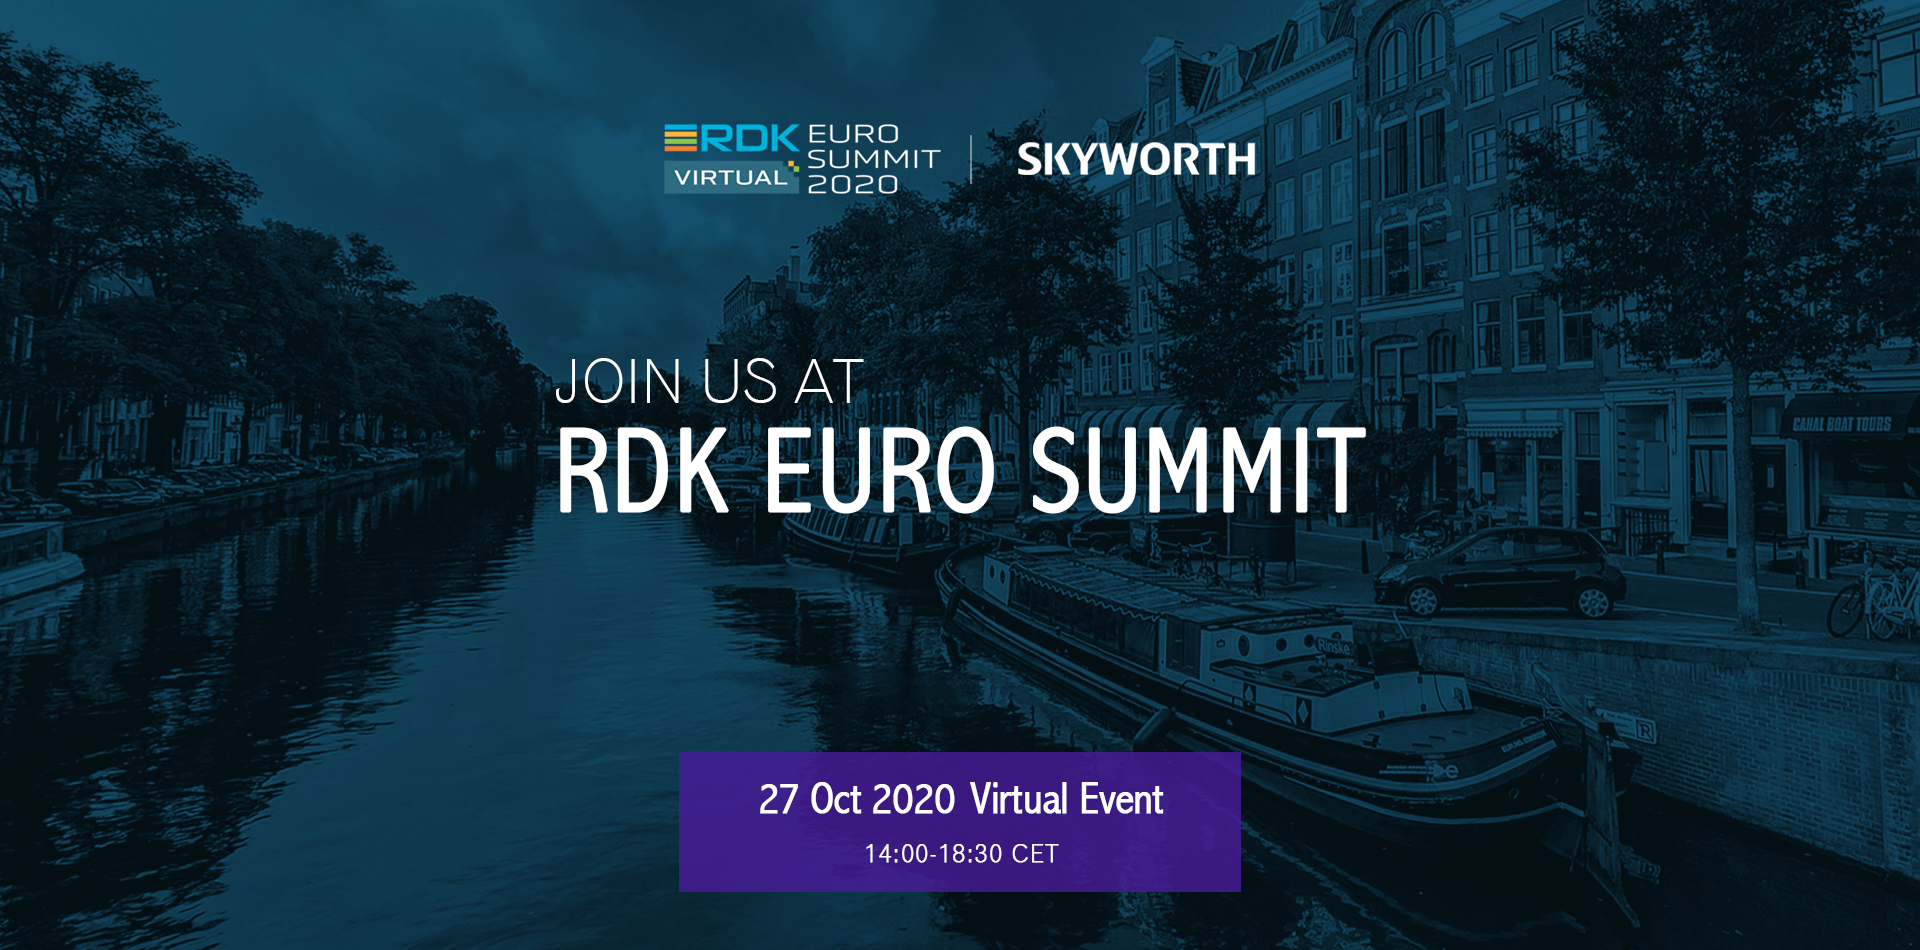 SKYWORTH Will Attend RDK Euro Summit 2020 and brings the world's first RDK Video Accelerator Based on Amlogic